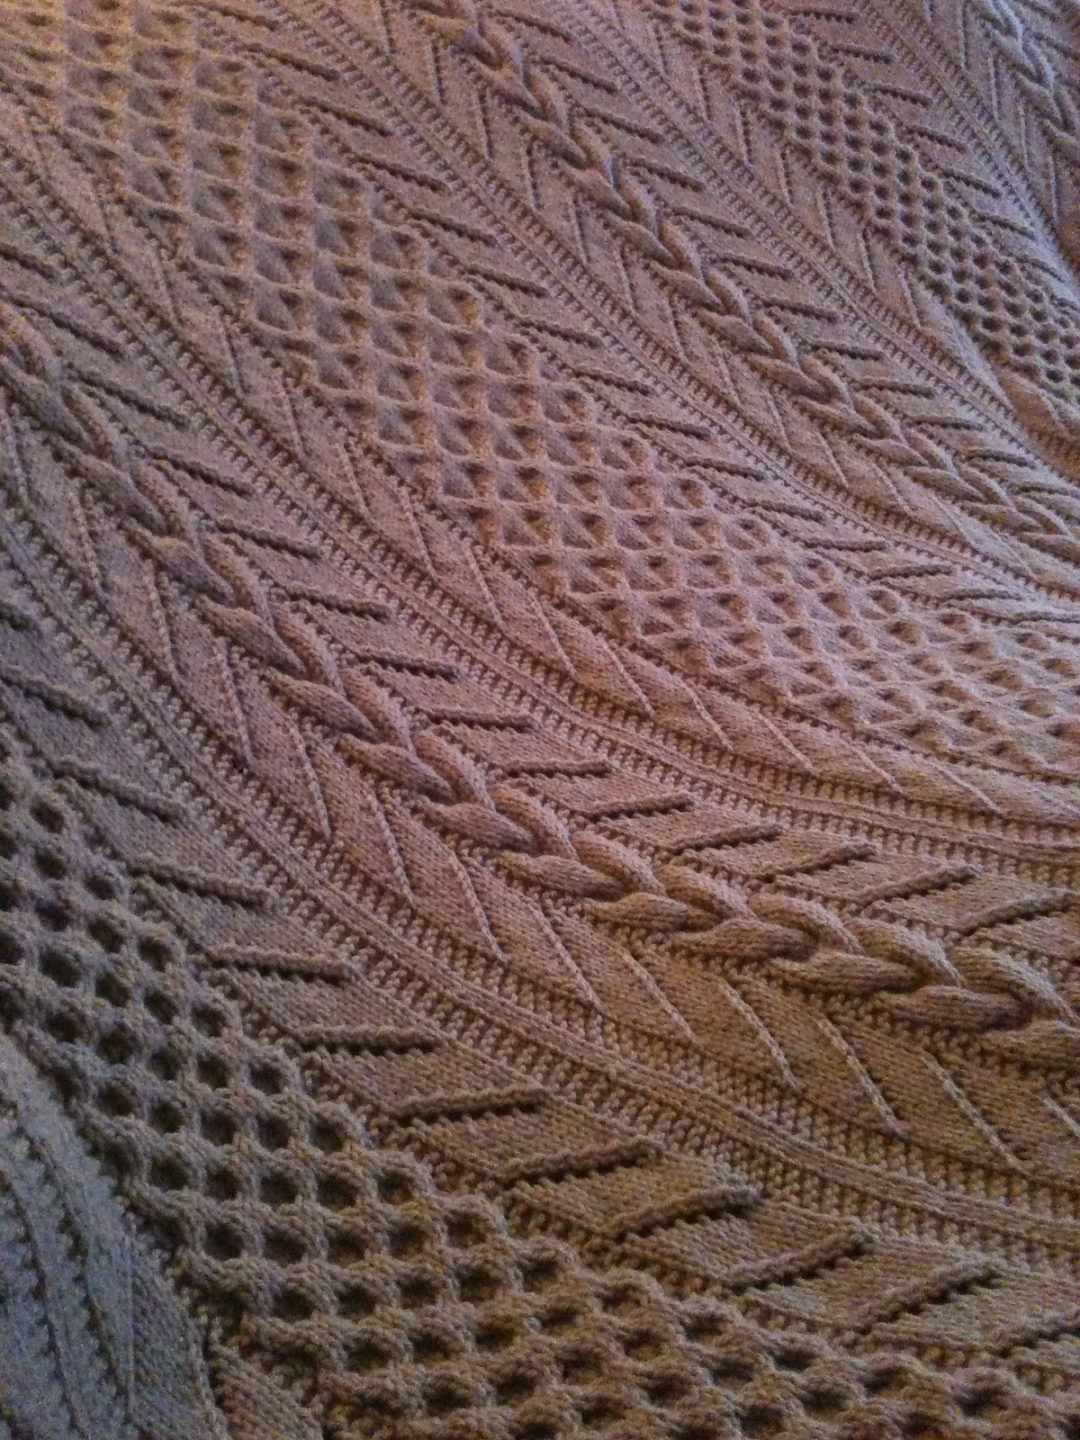 Free Knitting Pattern for Cable and Lace Afghan | knitting patterns ...